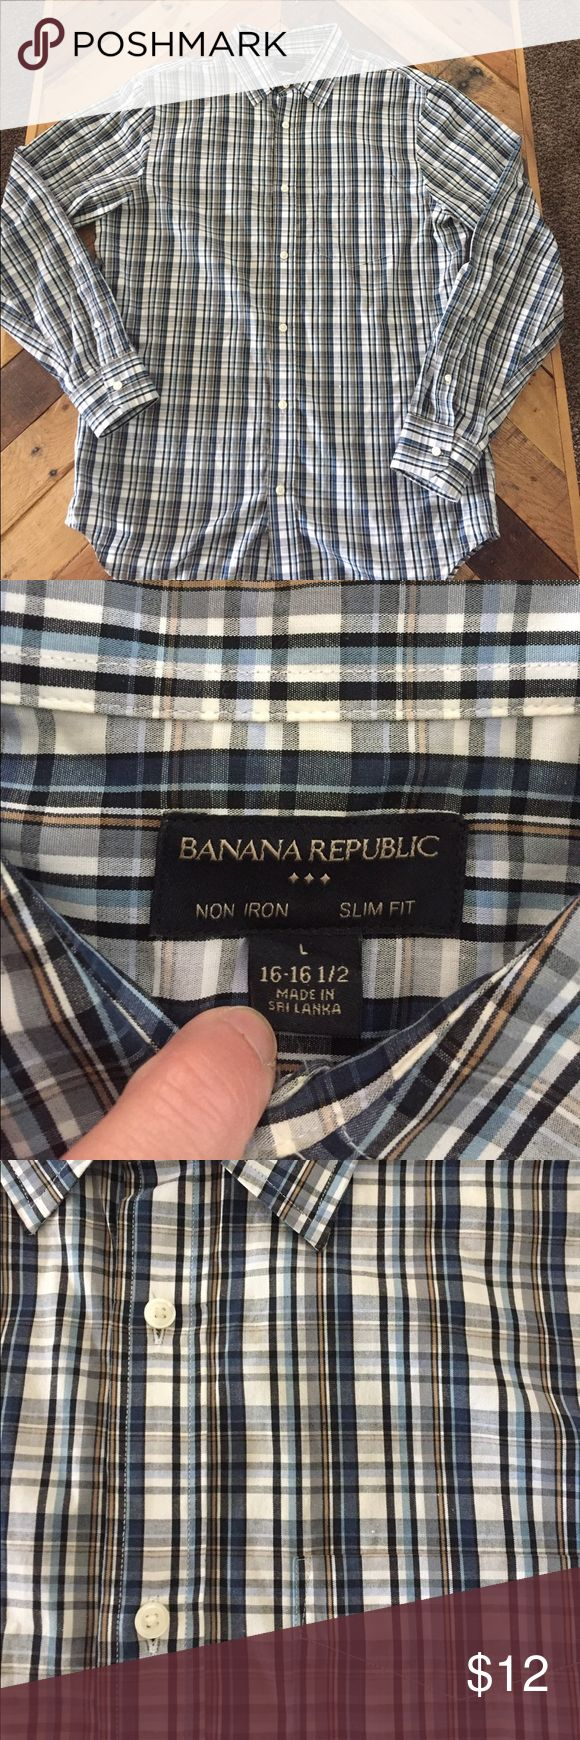 Banana Republic men's slim fit dress shirt (L) Banana Republic men's plaid button down shirt (large). Non-iron, slim fit, 16 - 16.5.  Beautiful plaid (blues, white, tan).  Great shirt, worn only a few times and in great condition. Banana Republic Shirts Dress Shirts